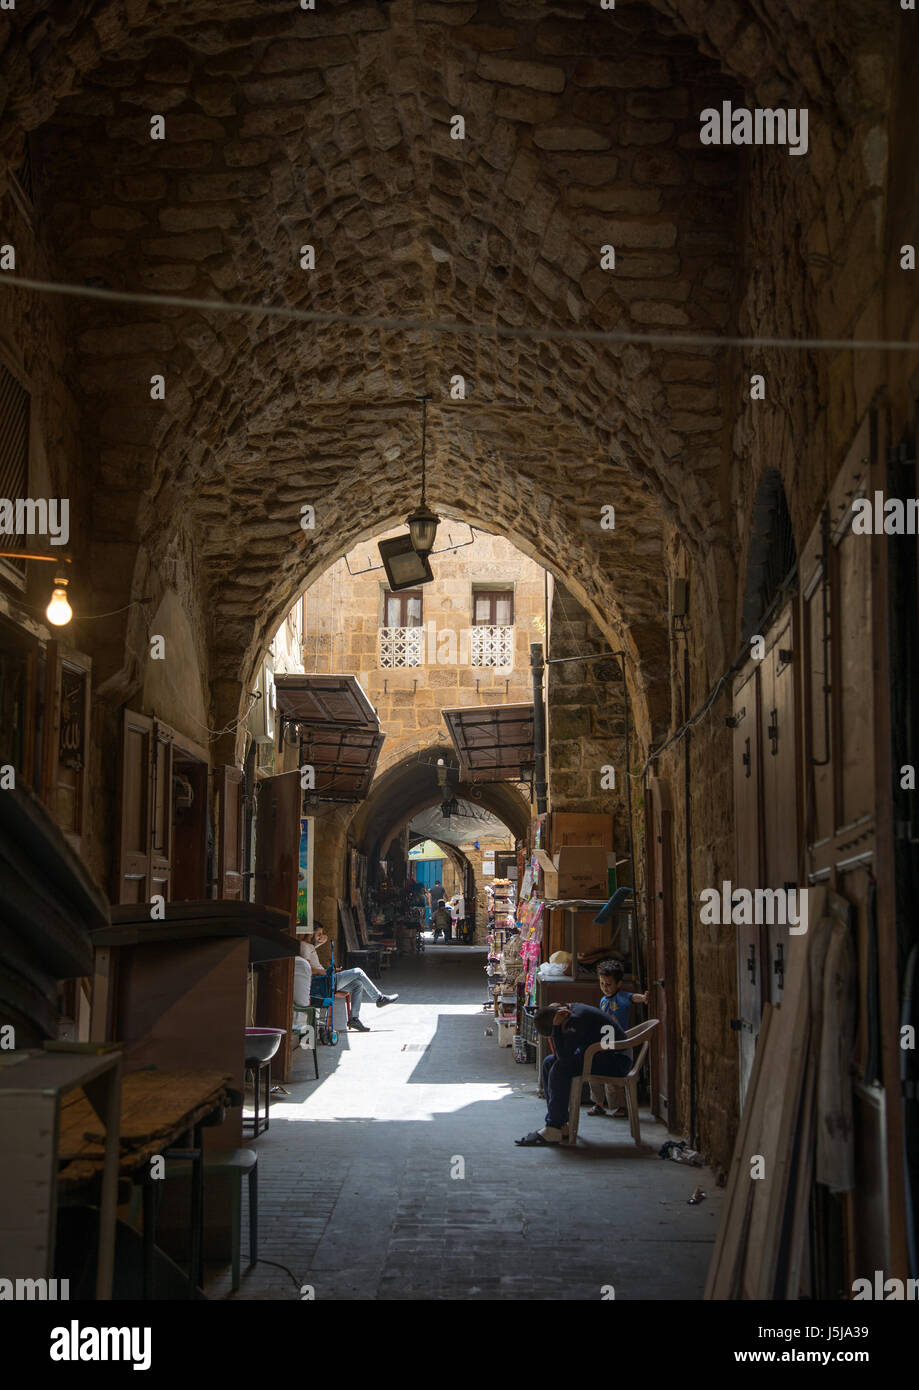 Old covered souk, South Governorate, Sidon, Lebanon - Stock-Bilder